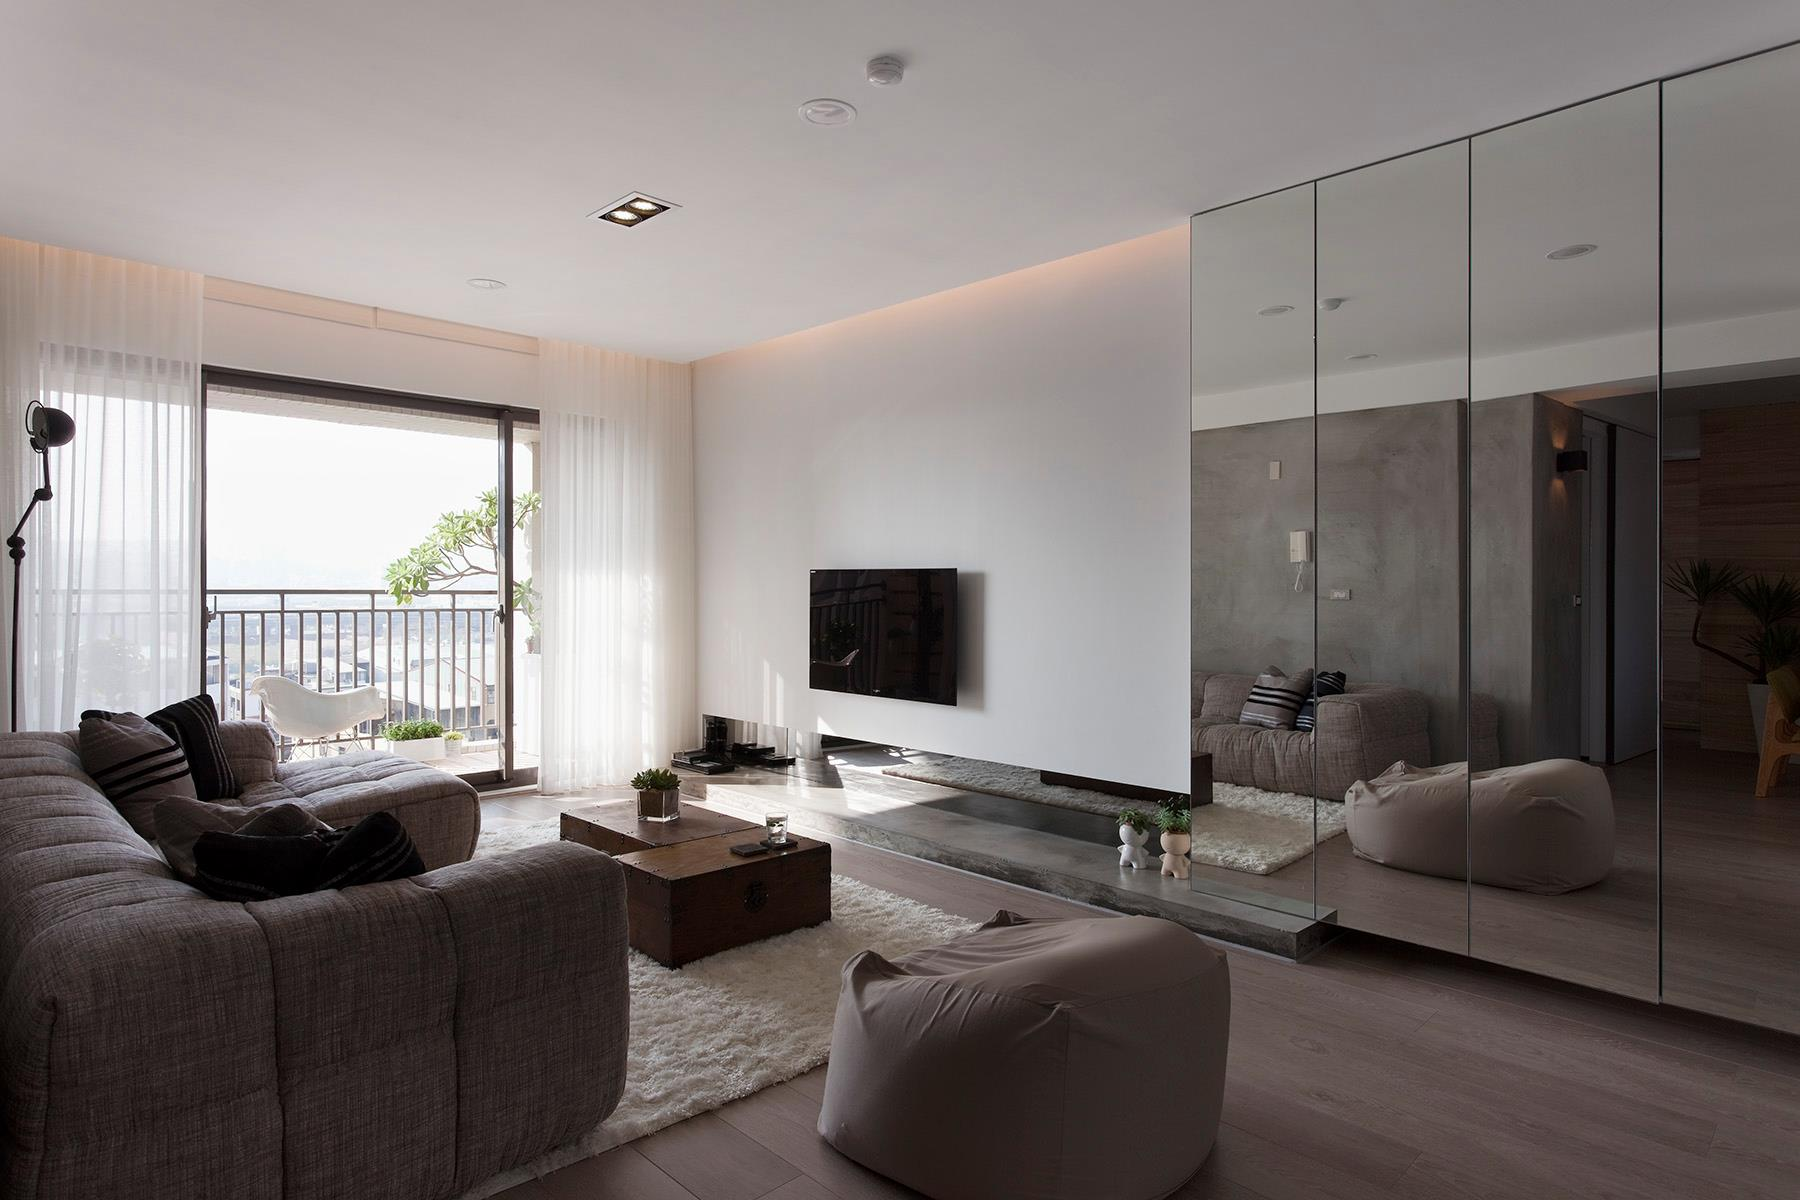 Minimalist apartment in taiwan by fertility design 2 for Minimalist apartment design